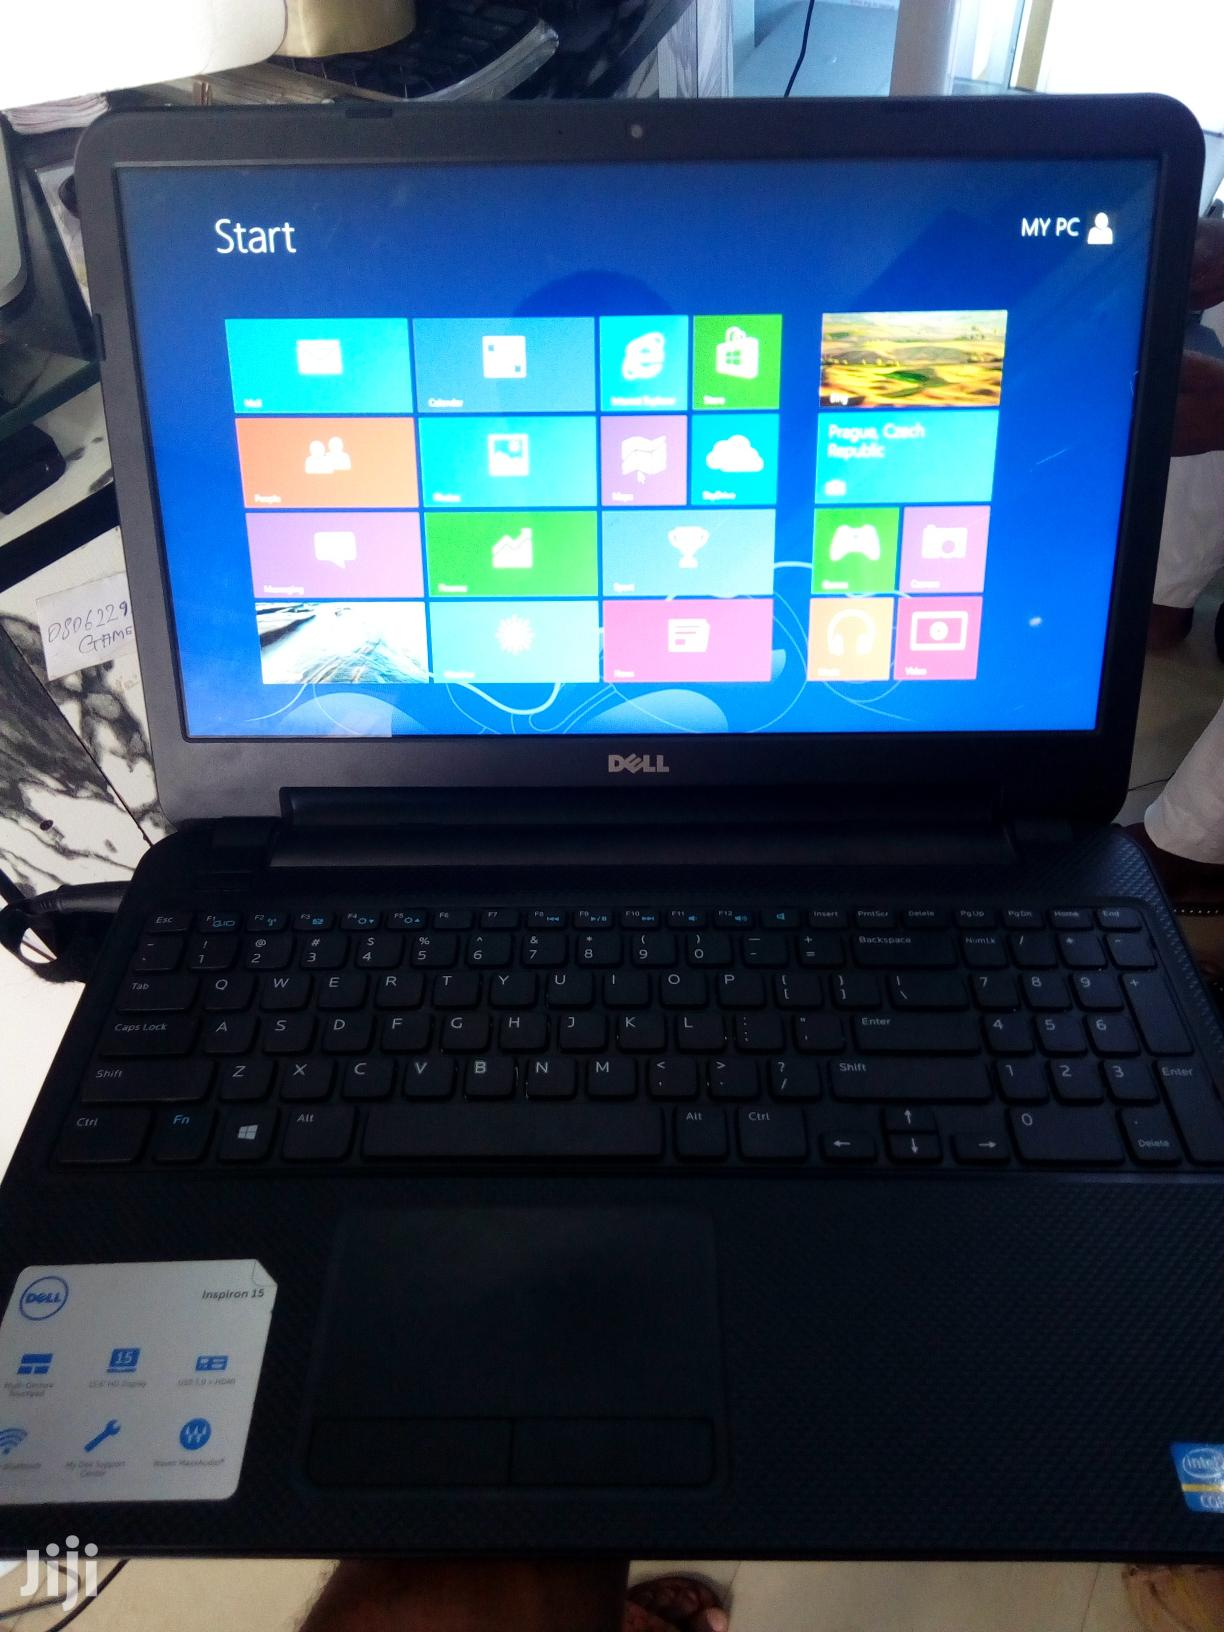 Uk Used Dell Inspiron 15 320gb Core I3 4gb Ram In Asokoro Laptops Computers Mike Merchandise Ict Jiji Ng For Sale In Asokoro Mike Merchandise Ict On Jiji Ng